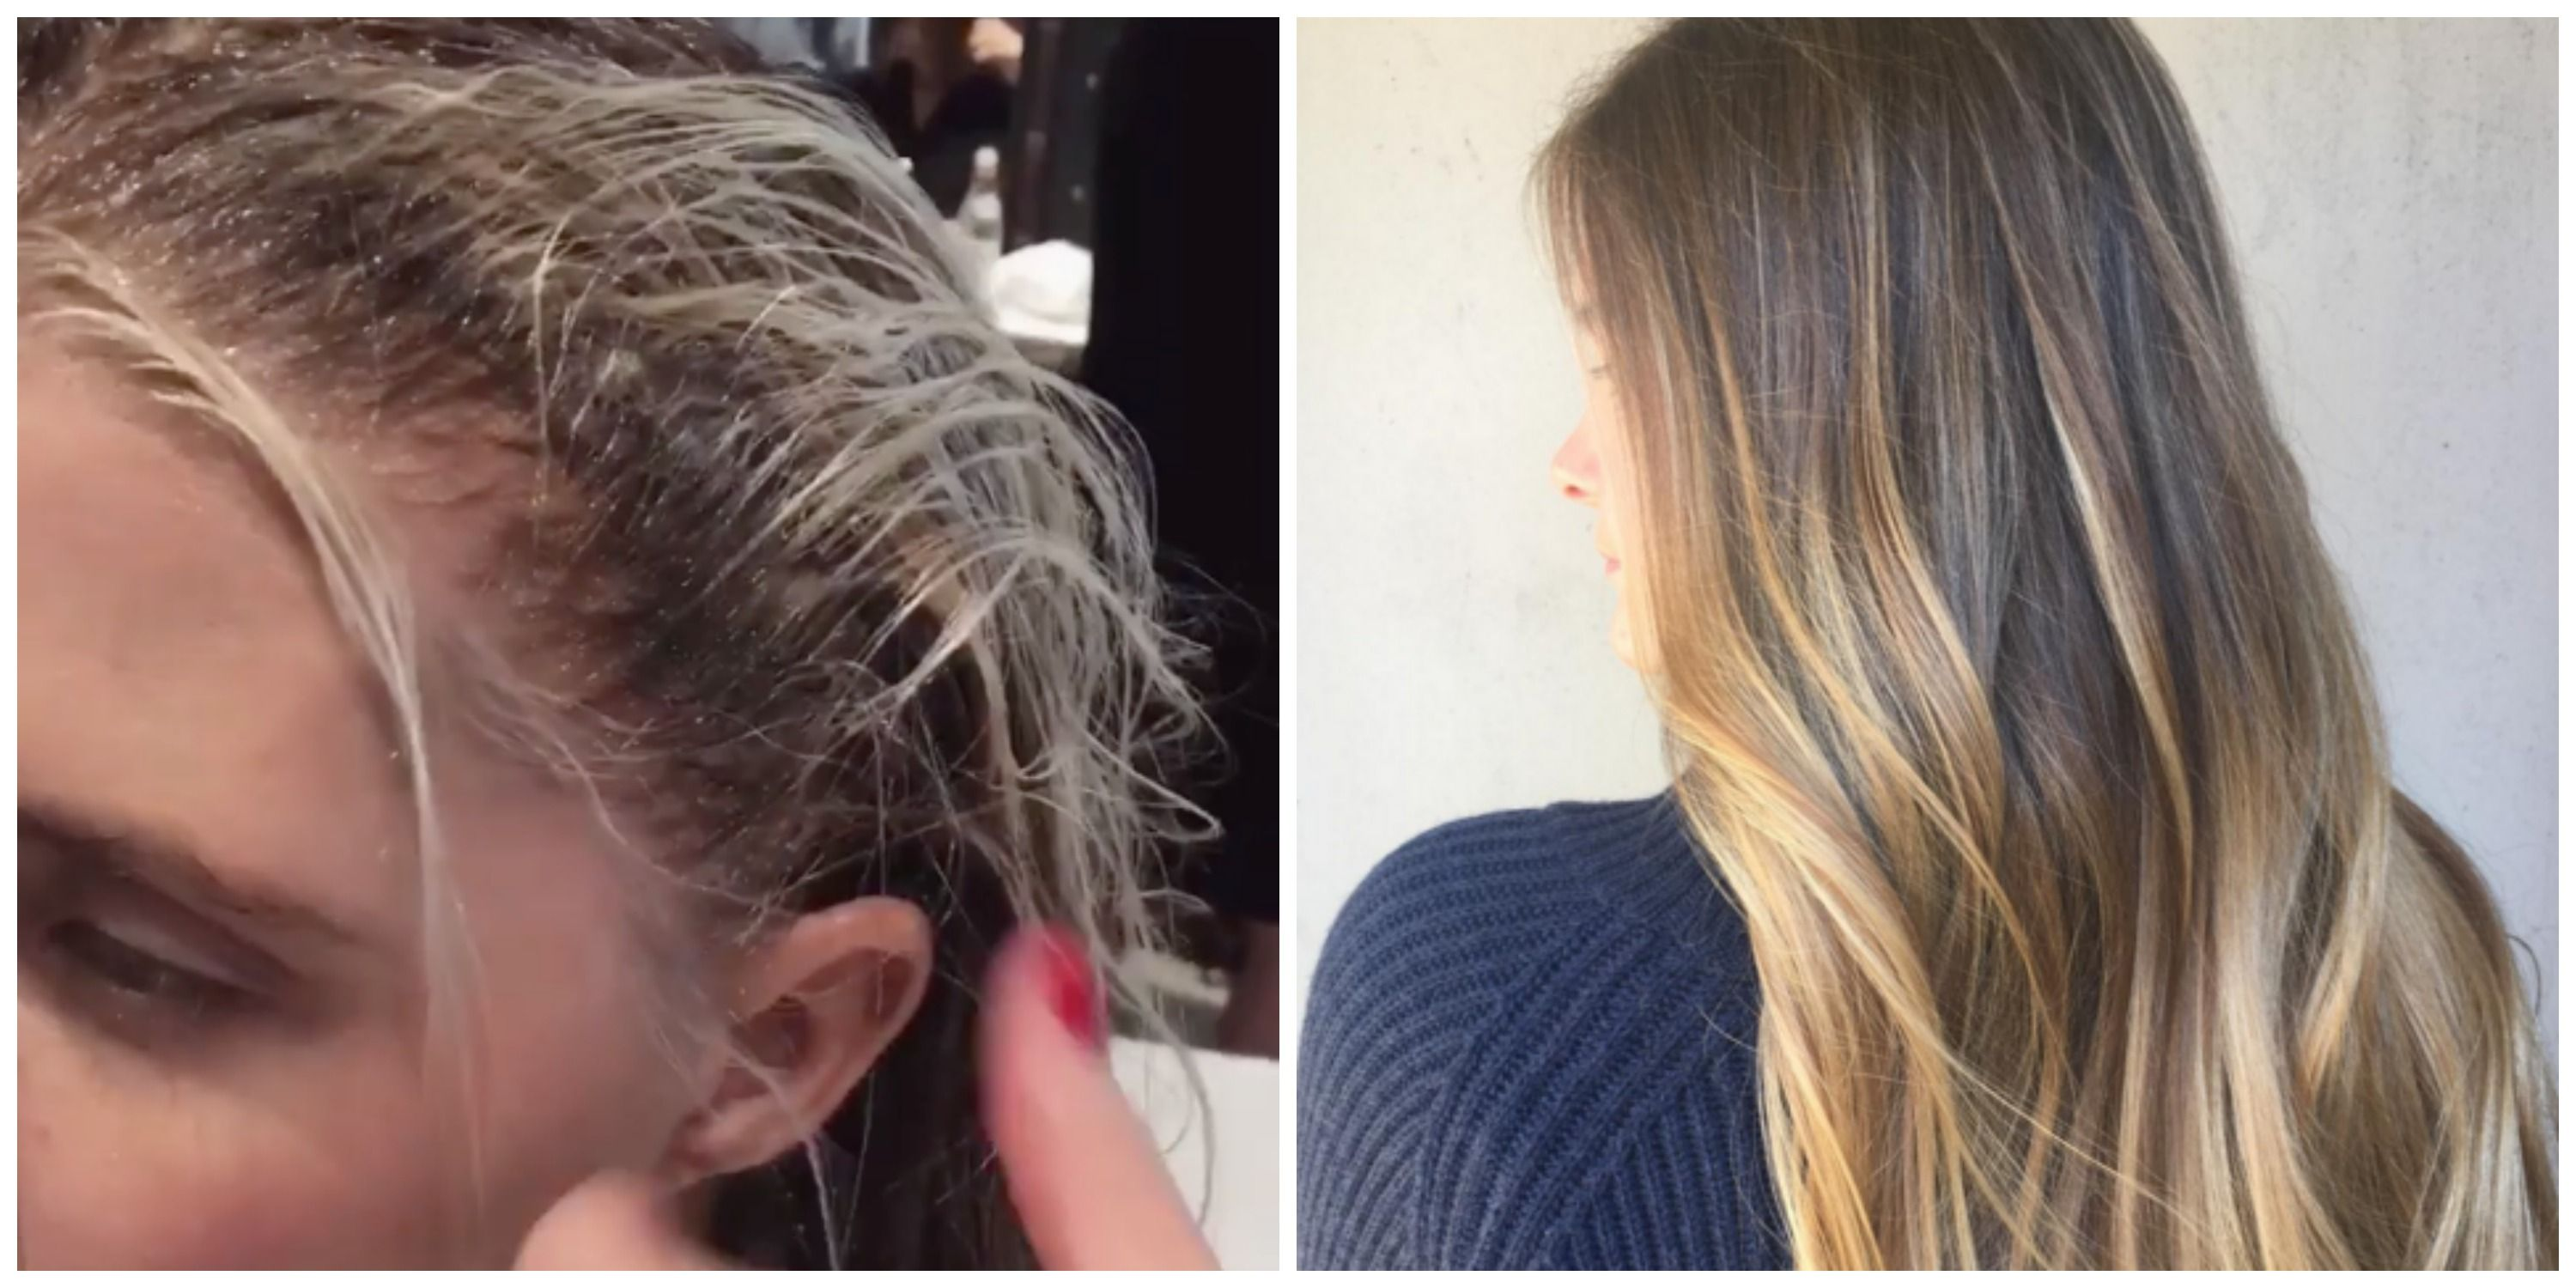 Gloss Smudging Is The Hair Color Trend Youre About To See